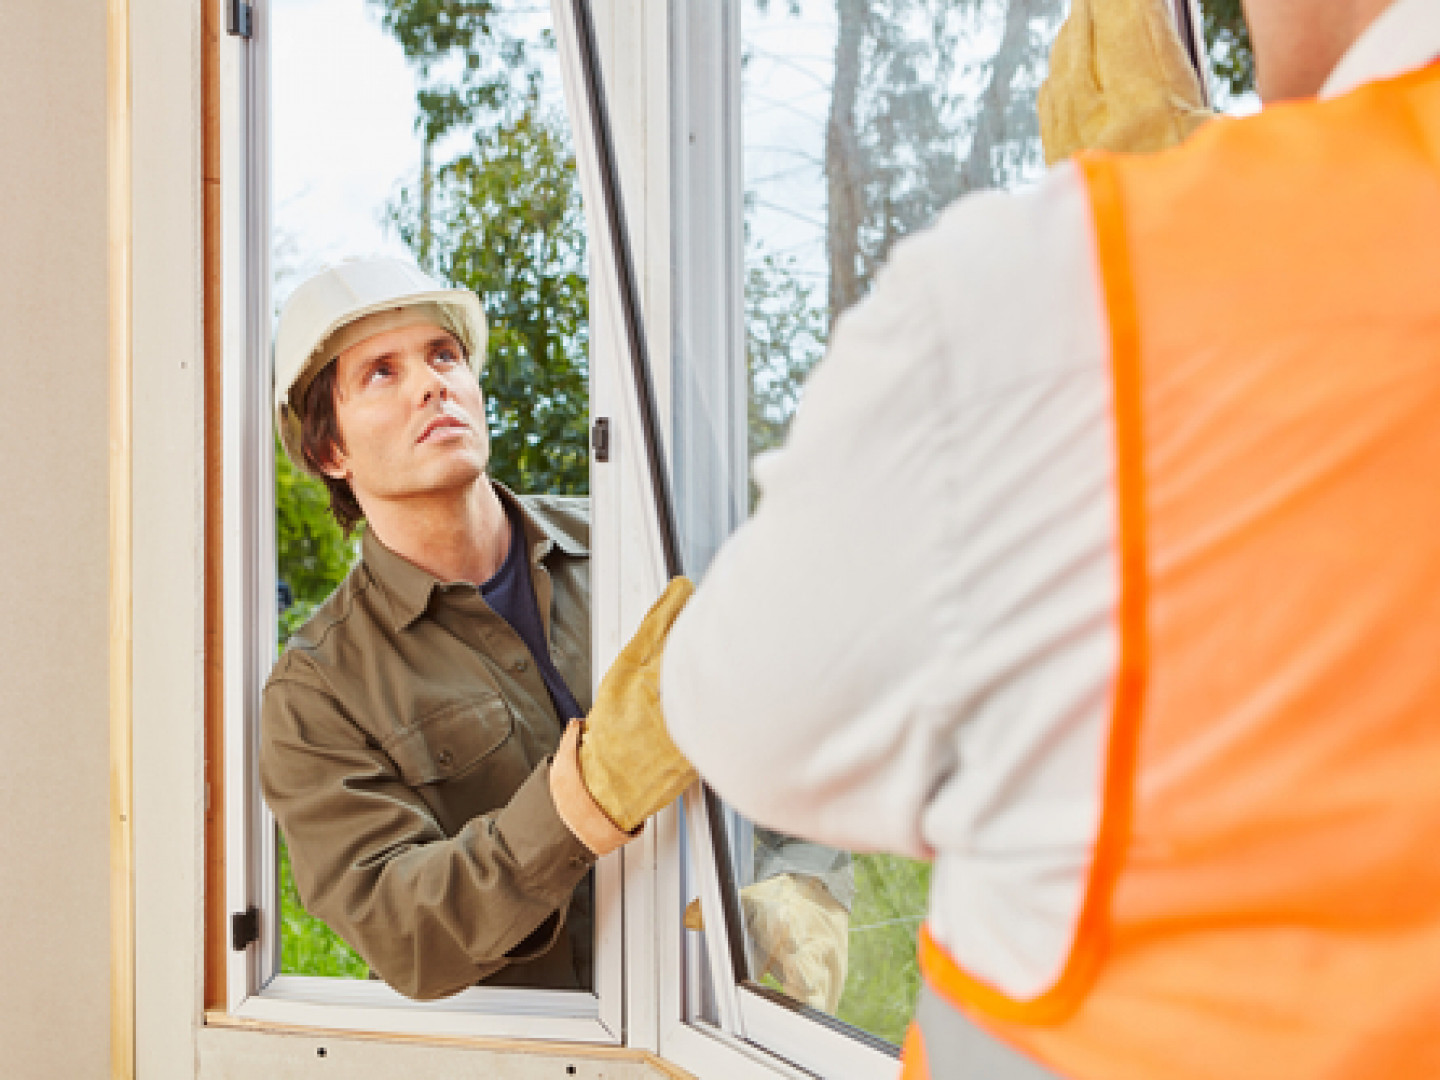 3 reasons to schedule window replacement services